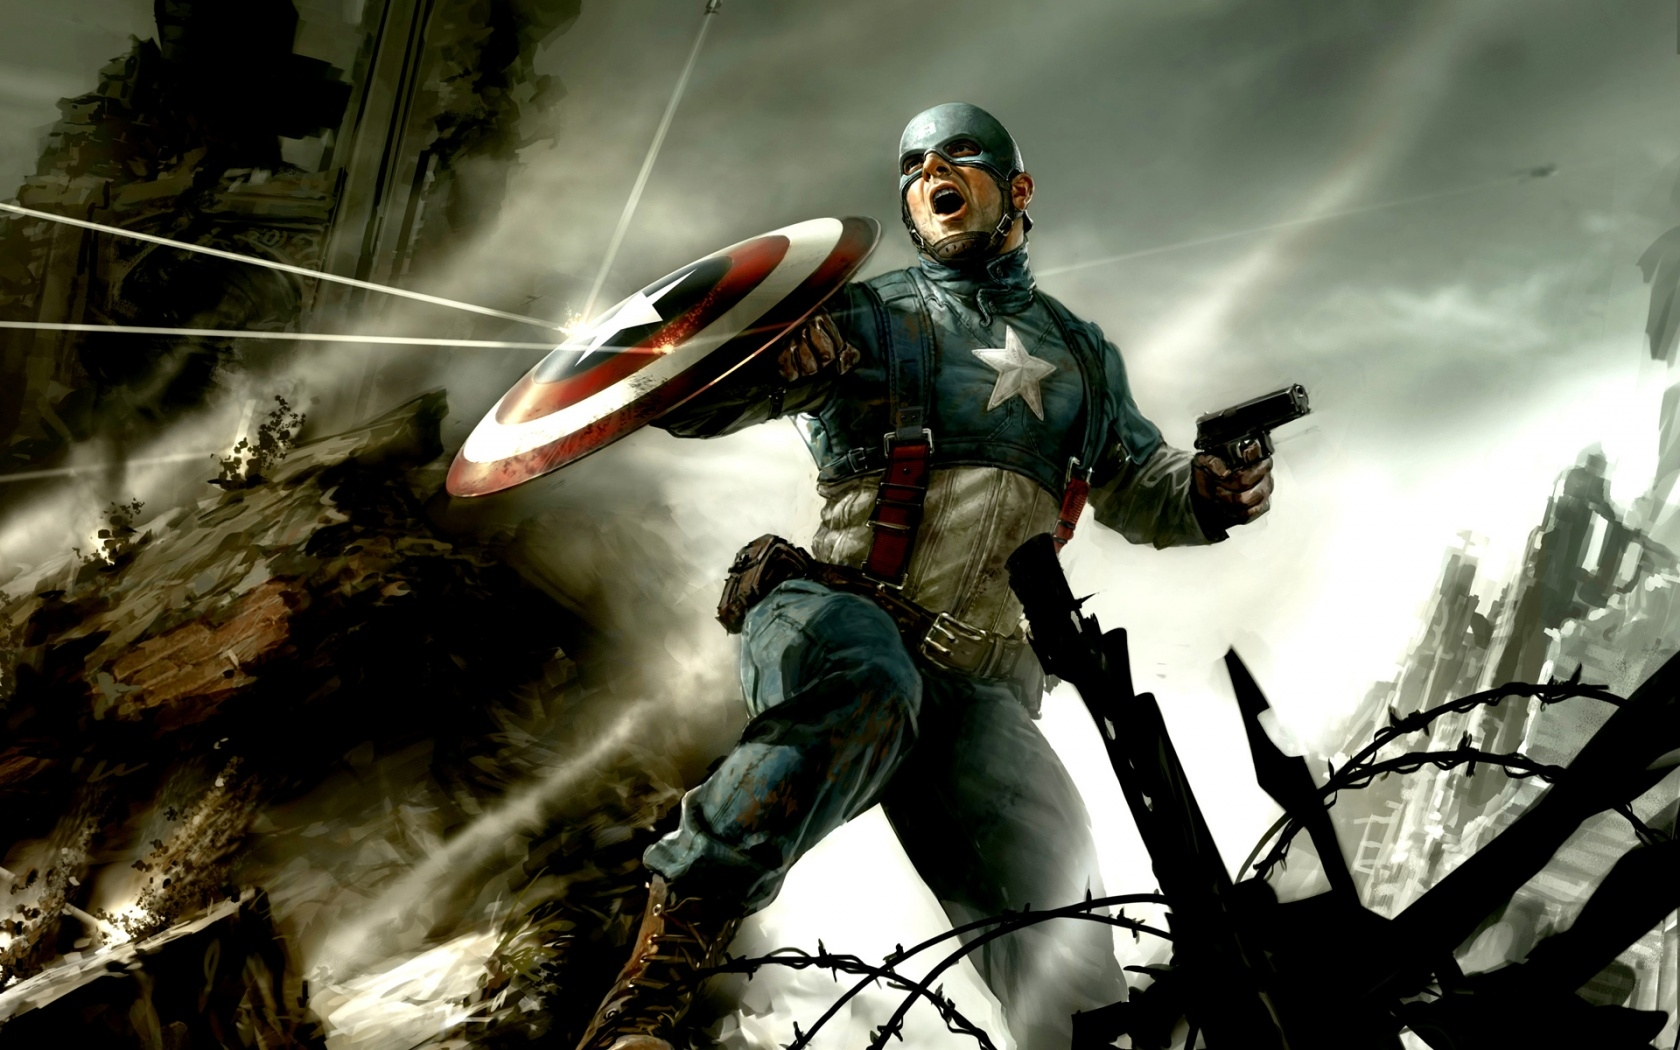 Captain America Hd Wallpapers Backgrounds Wallpaper 1680x1050